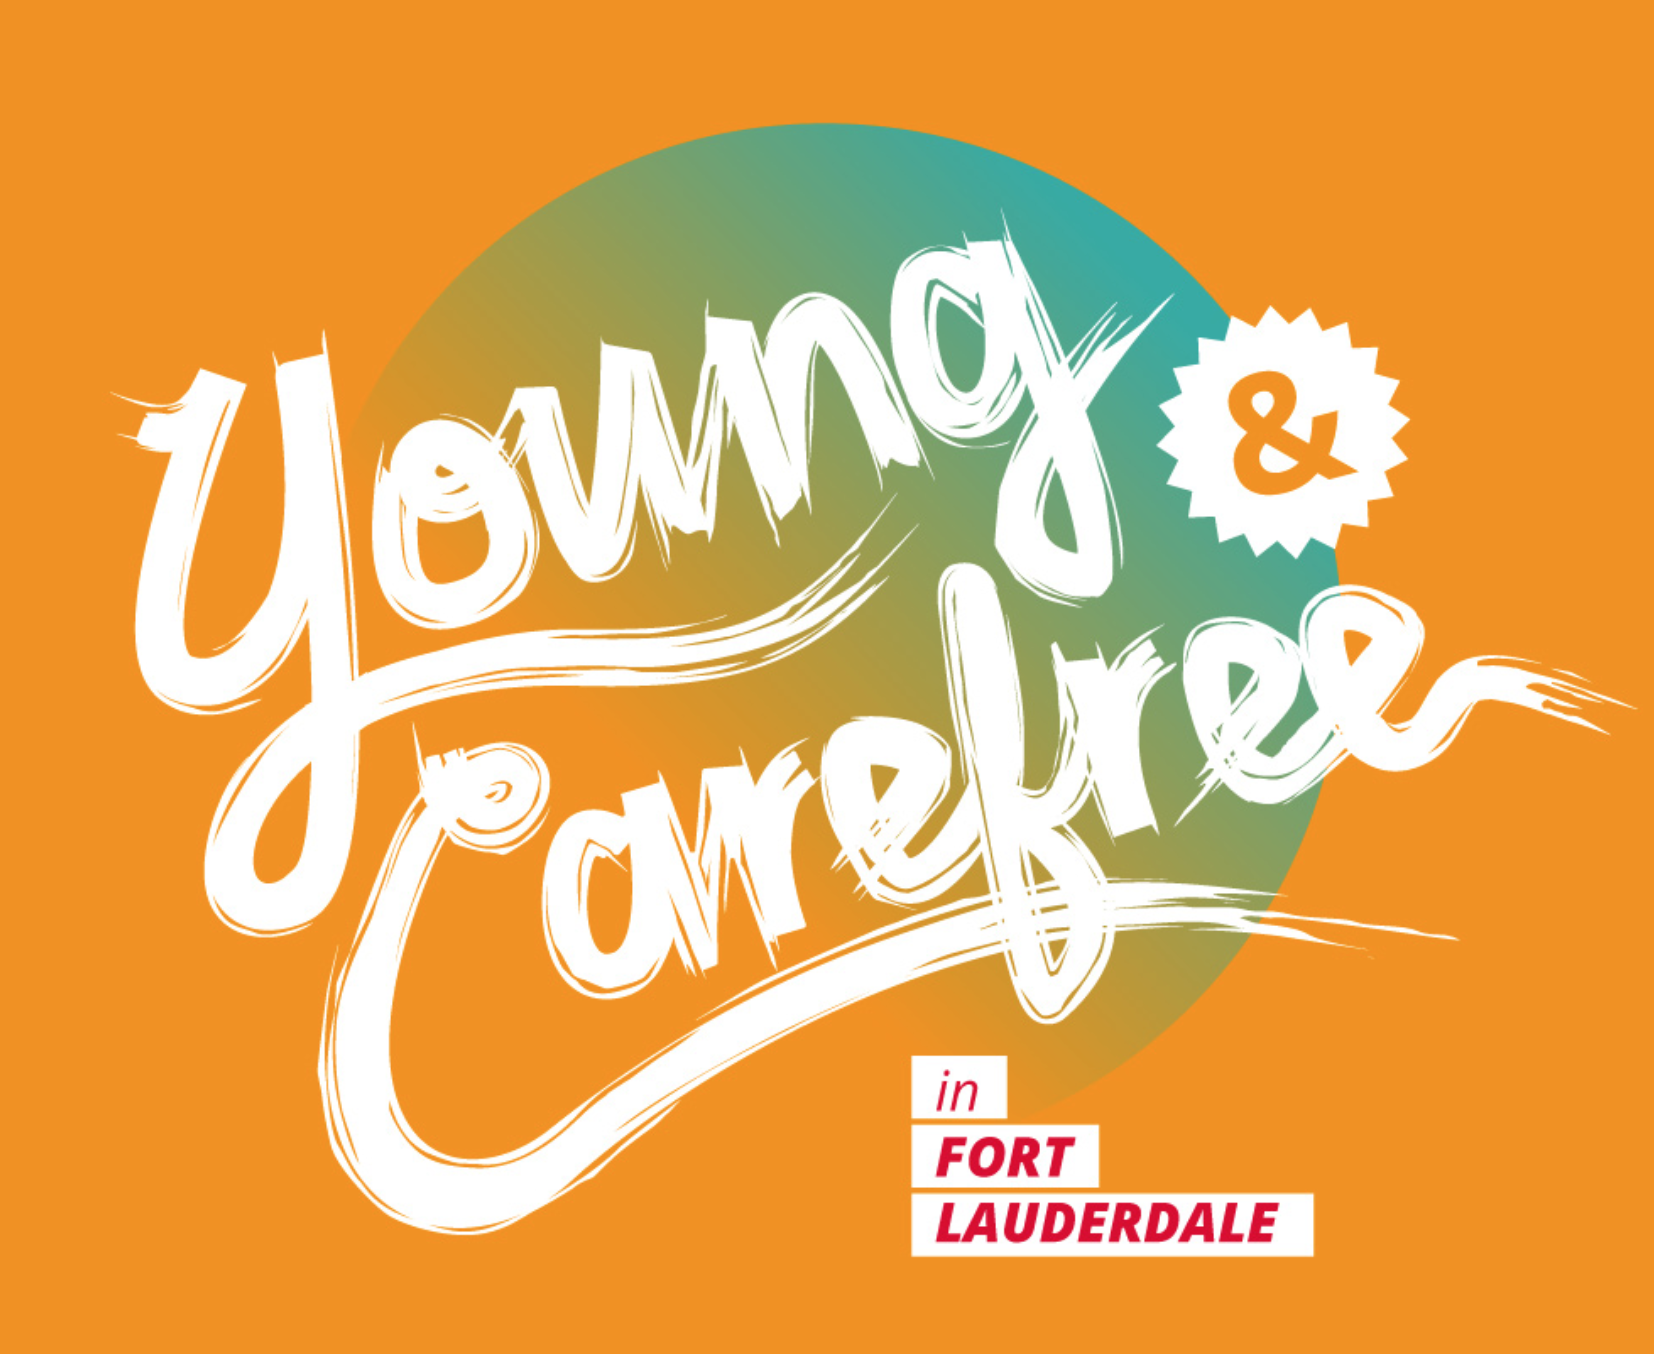 Young And Carefree In Fort Lauderdale